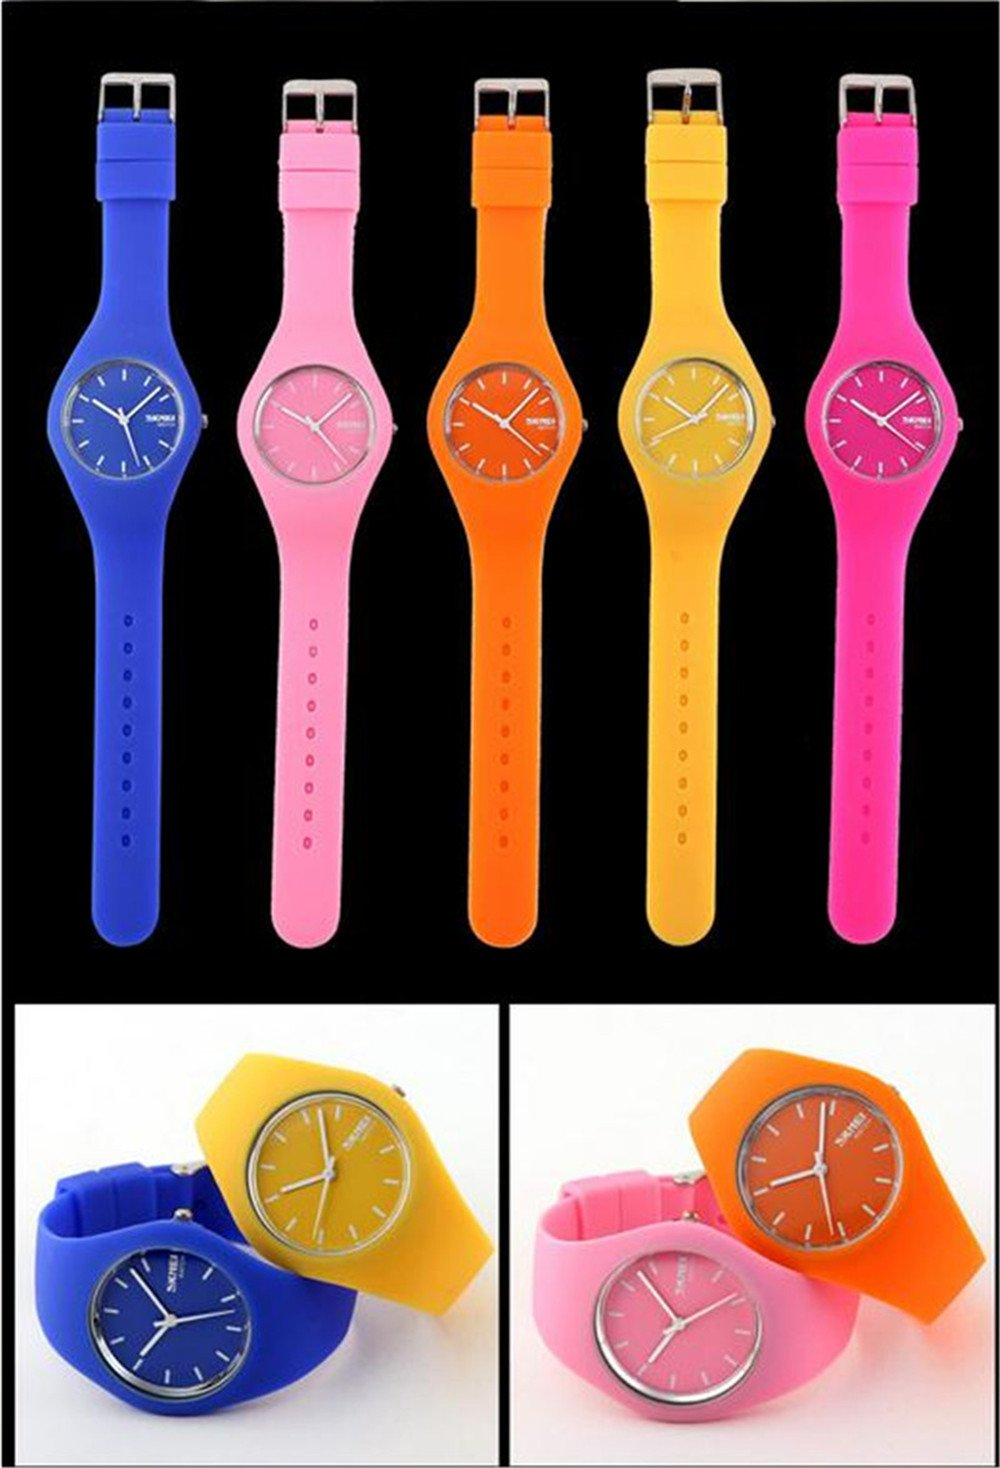 Skmei Fashion Trends Korean Version of The Silica Gel Quartz Ultra-Thin fine Gift Watches(12 Styles) (Rose red) by SKMEI (Image #9)